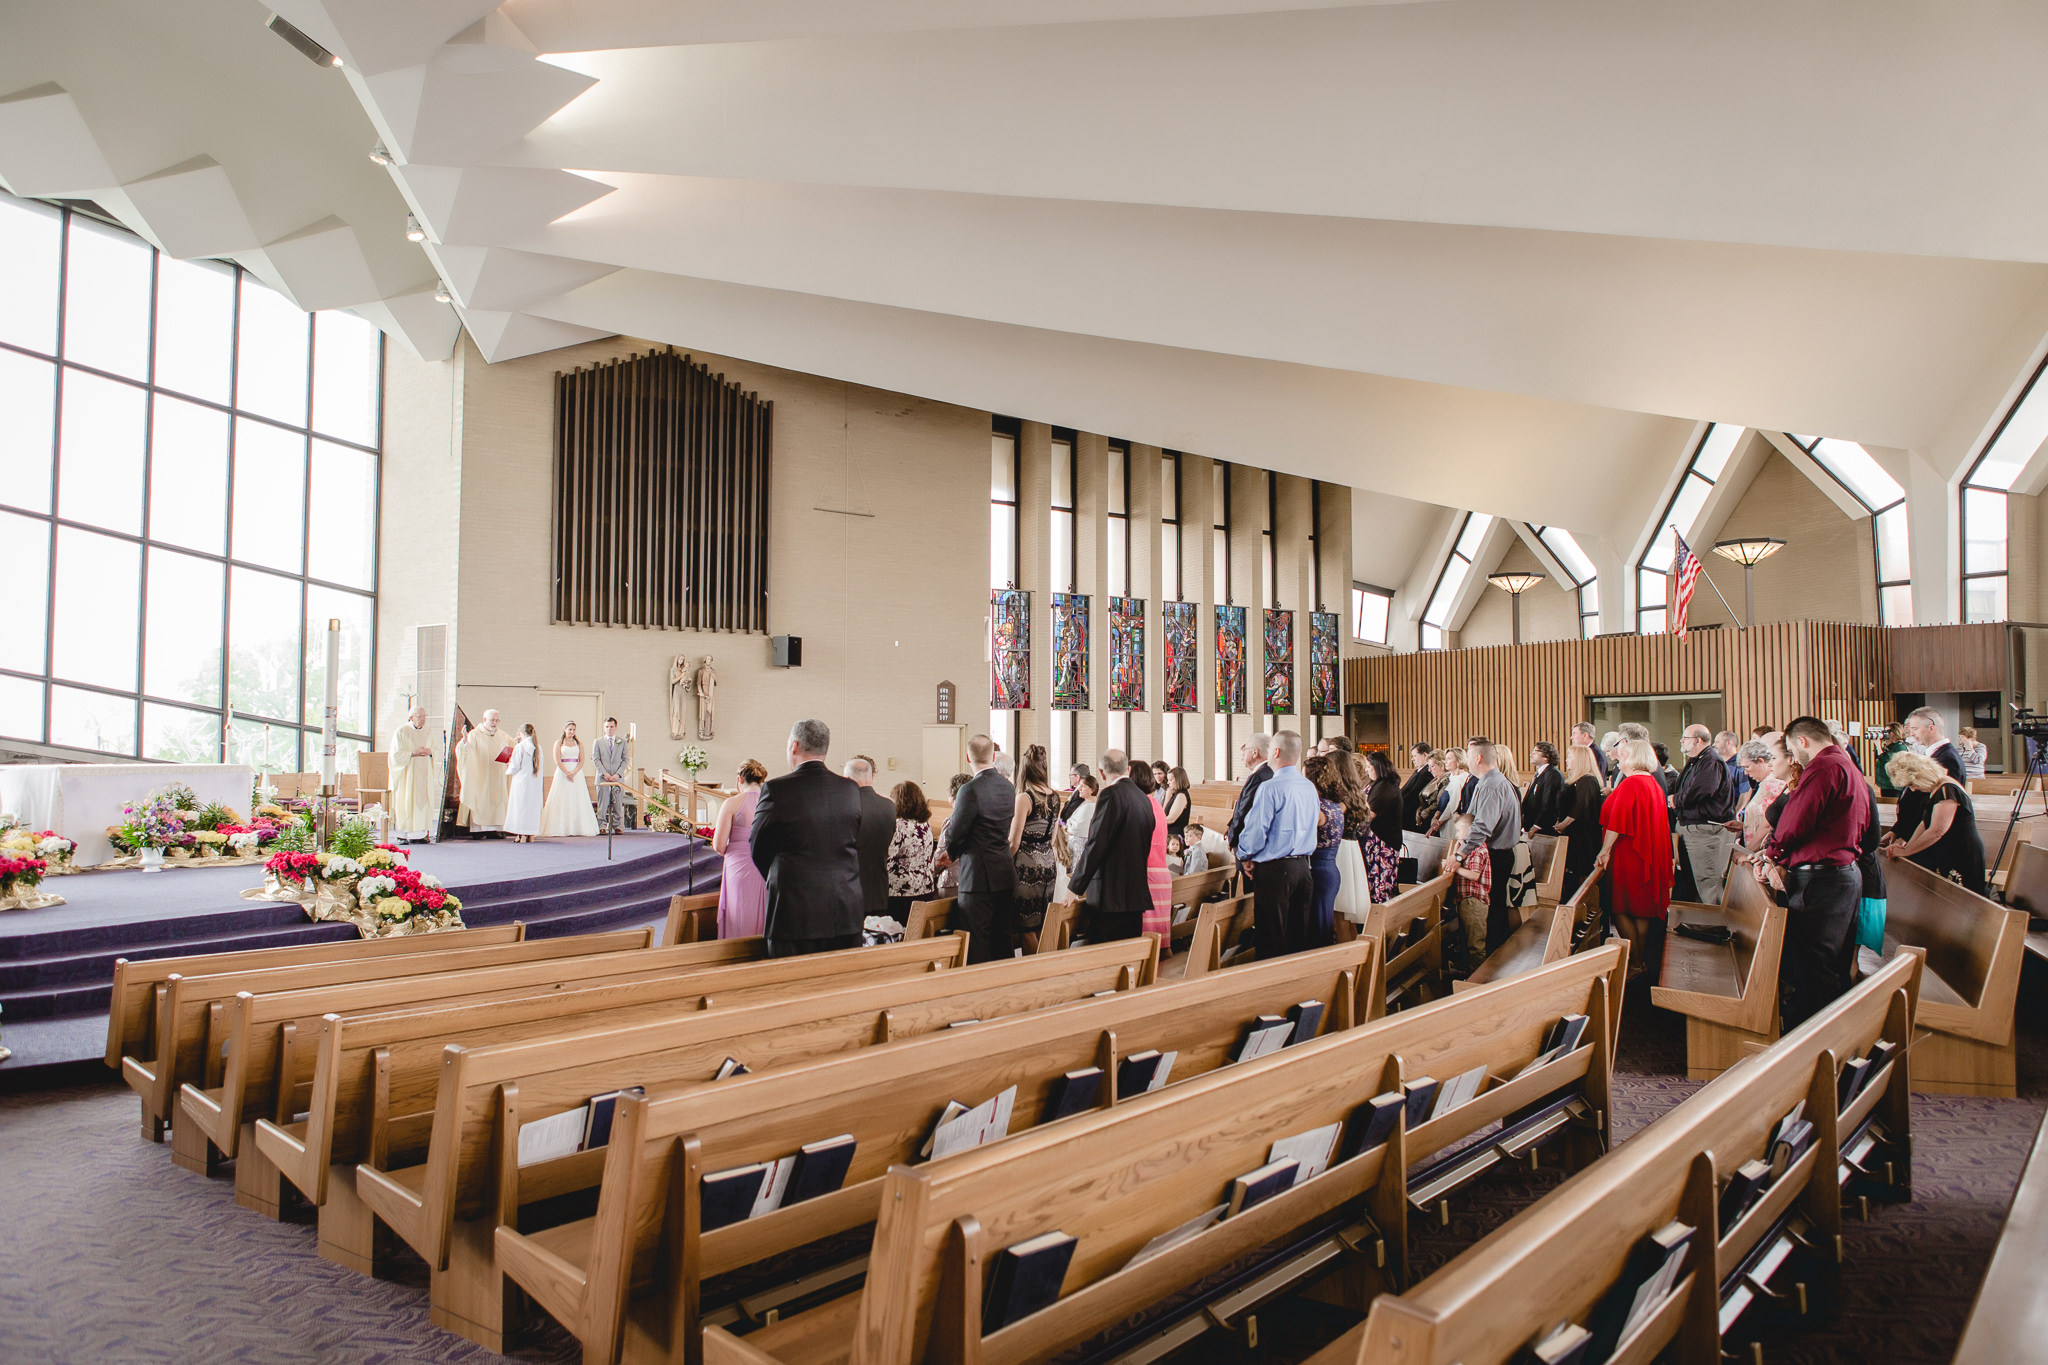 Wedding ceremony at St. Malachy Catholic Church in Kennedy Township, Pittsburgh, PA